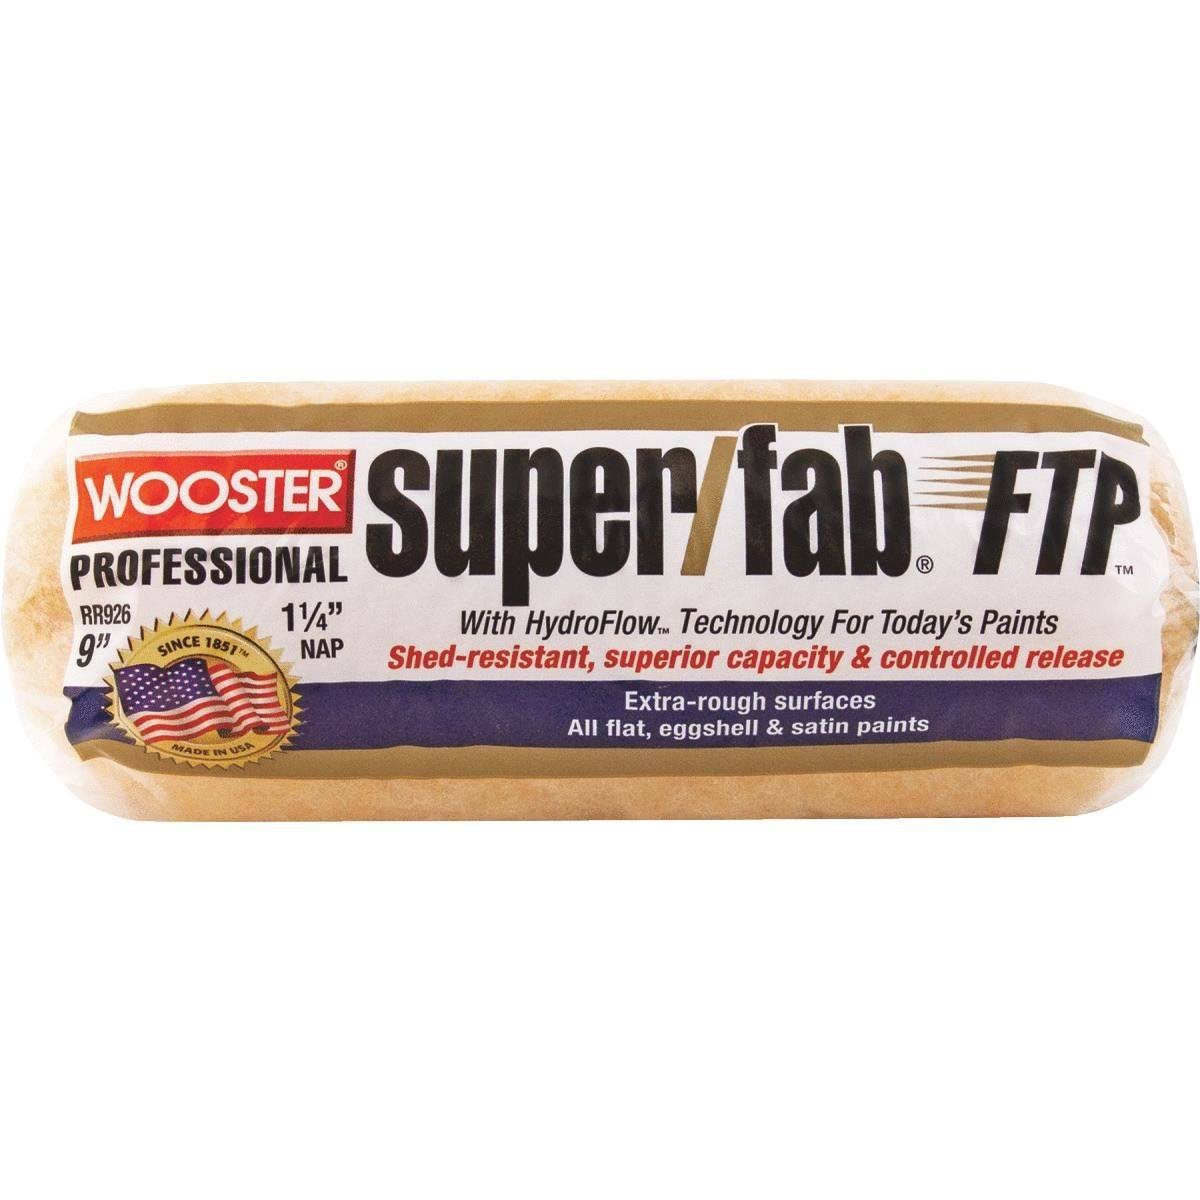 "Wooster RR926-9 Super/Fab FTP Roller Cover, 1-1/4"" Nap, 9"""